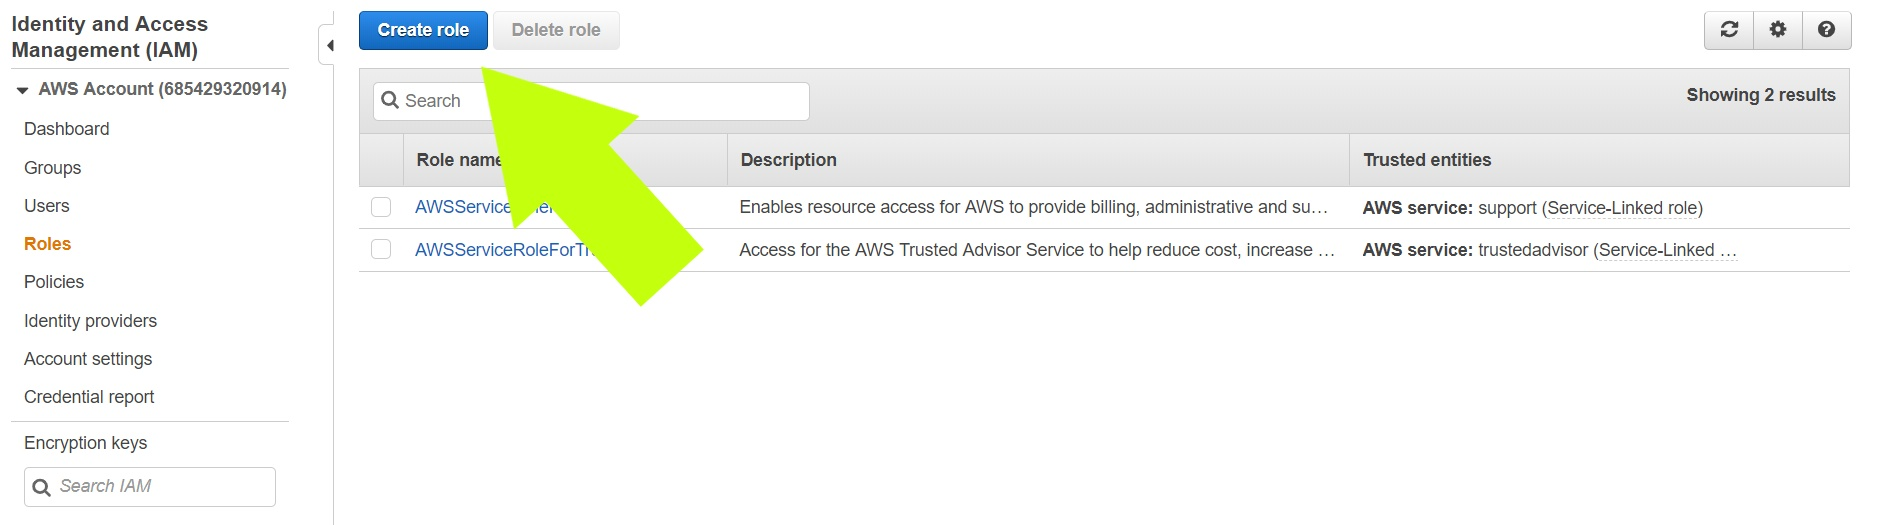 Amazon Redshift Tutorial 3.png